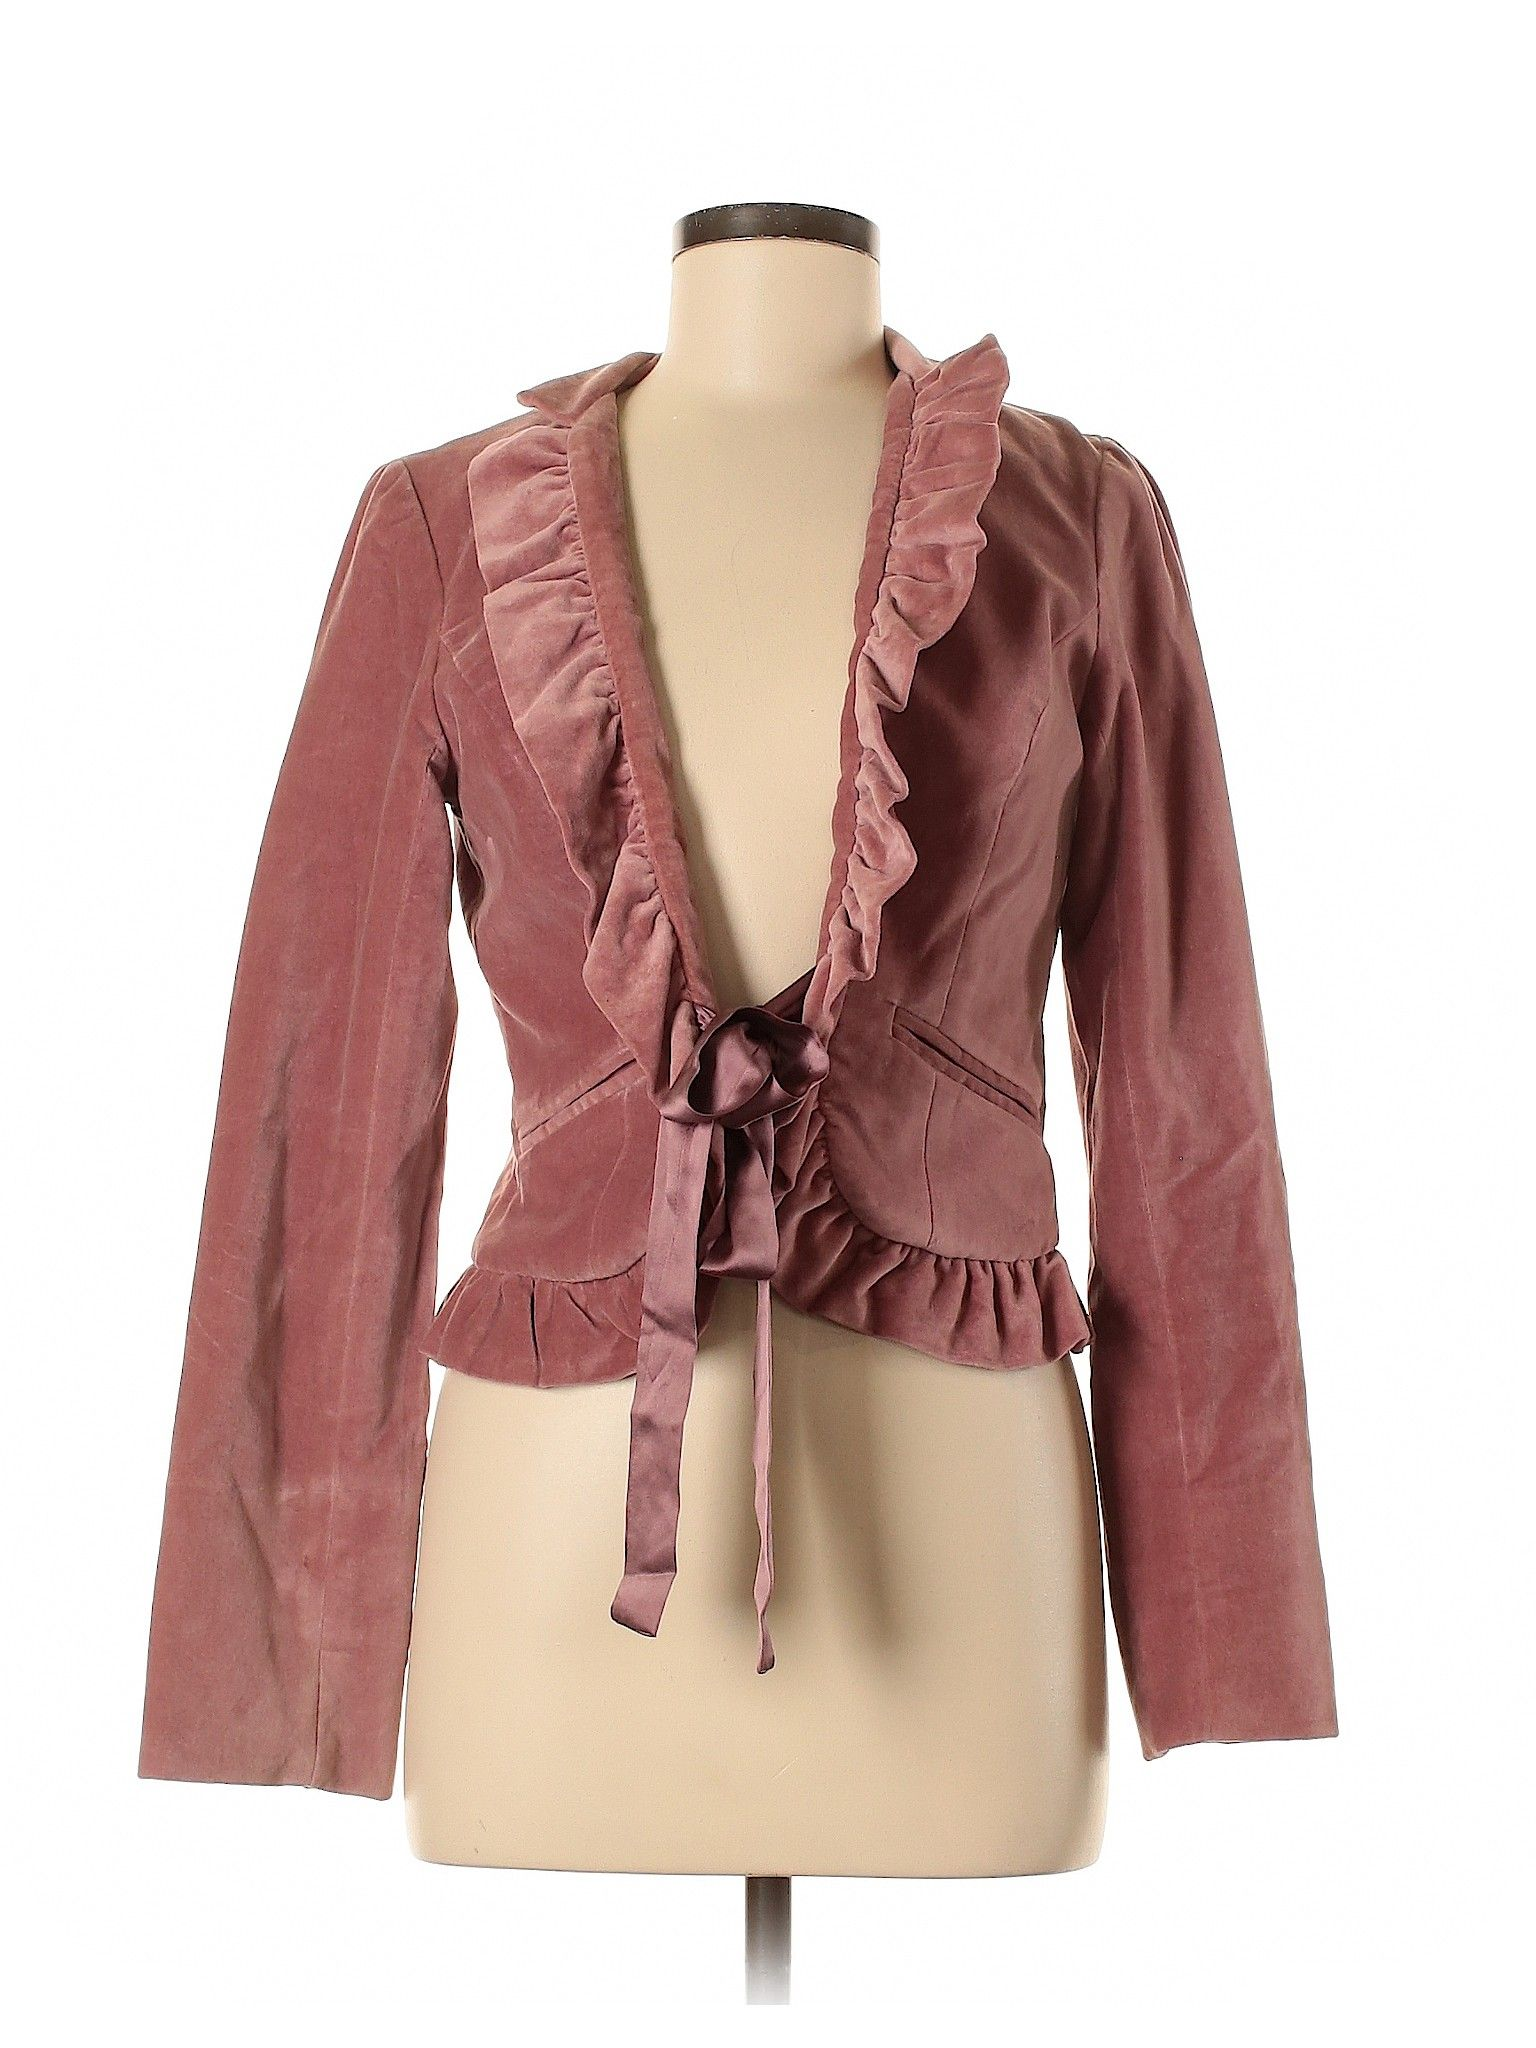 Liquid Blazer Pink Solid Women S Jackets Outerwear Size 6 Clothes Jackets For Women Second Hand Clothes